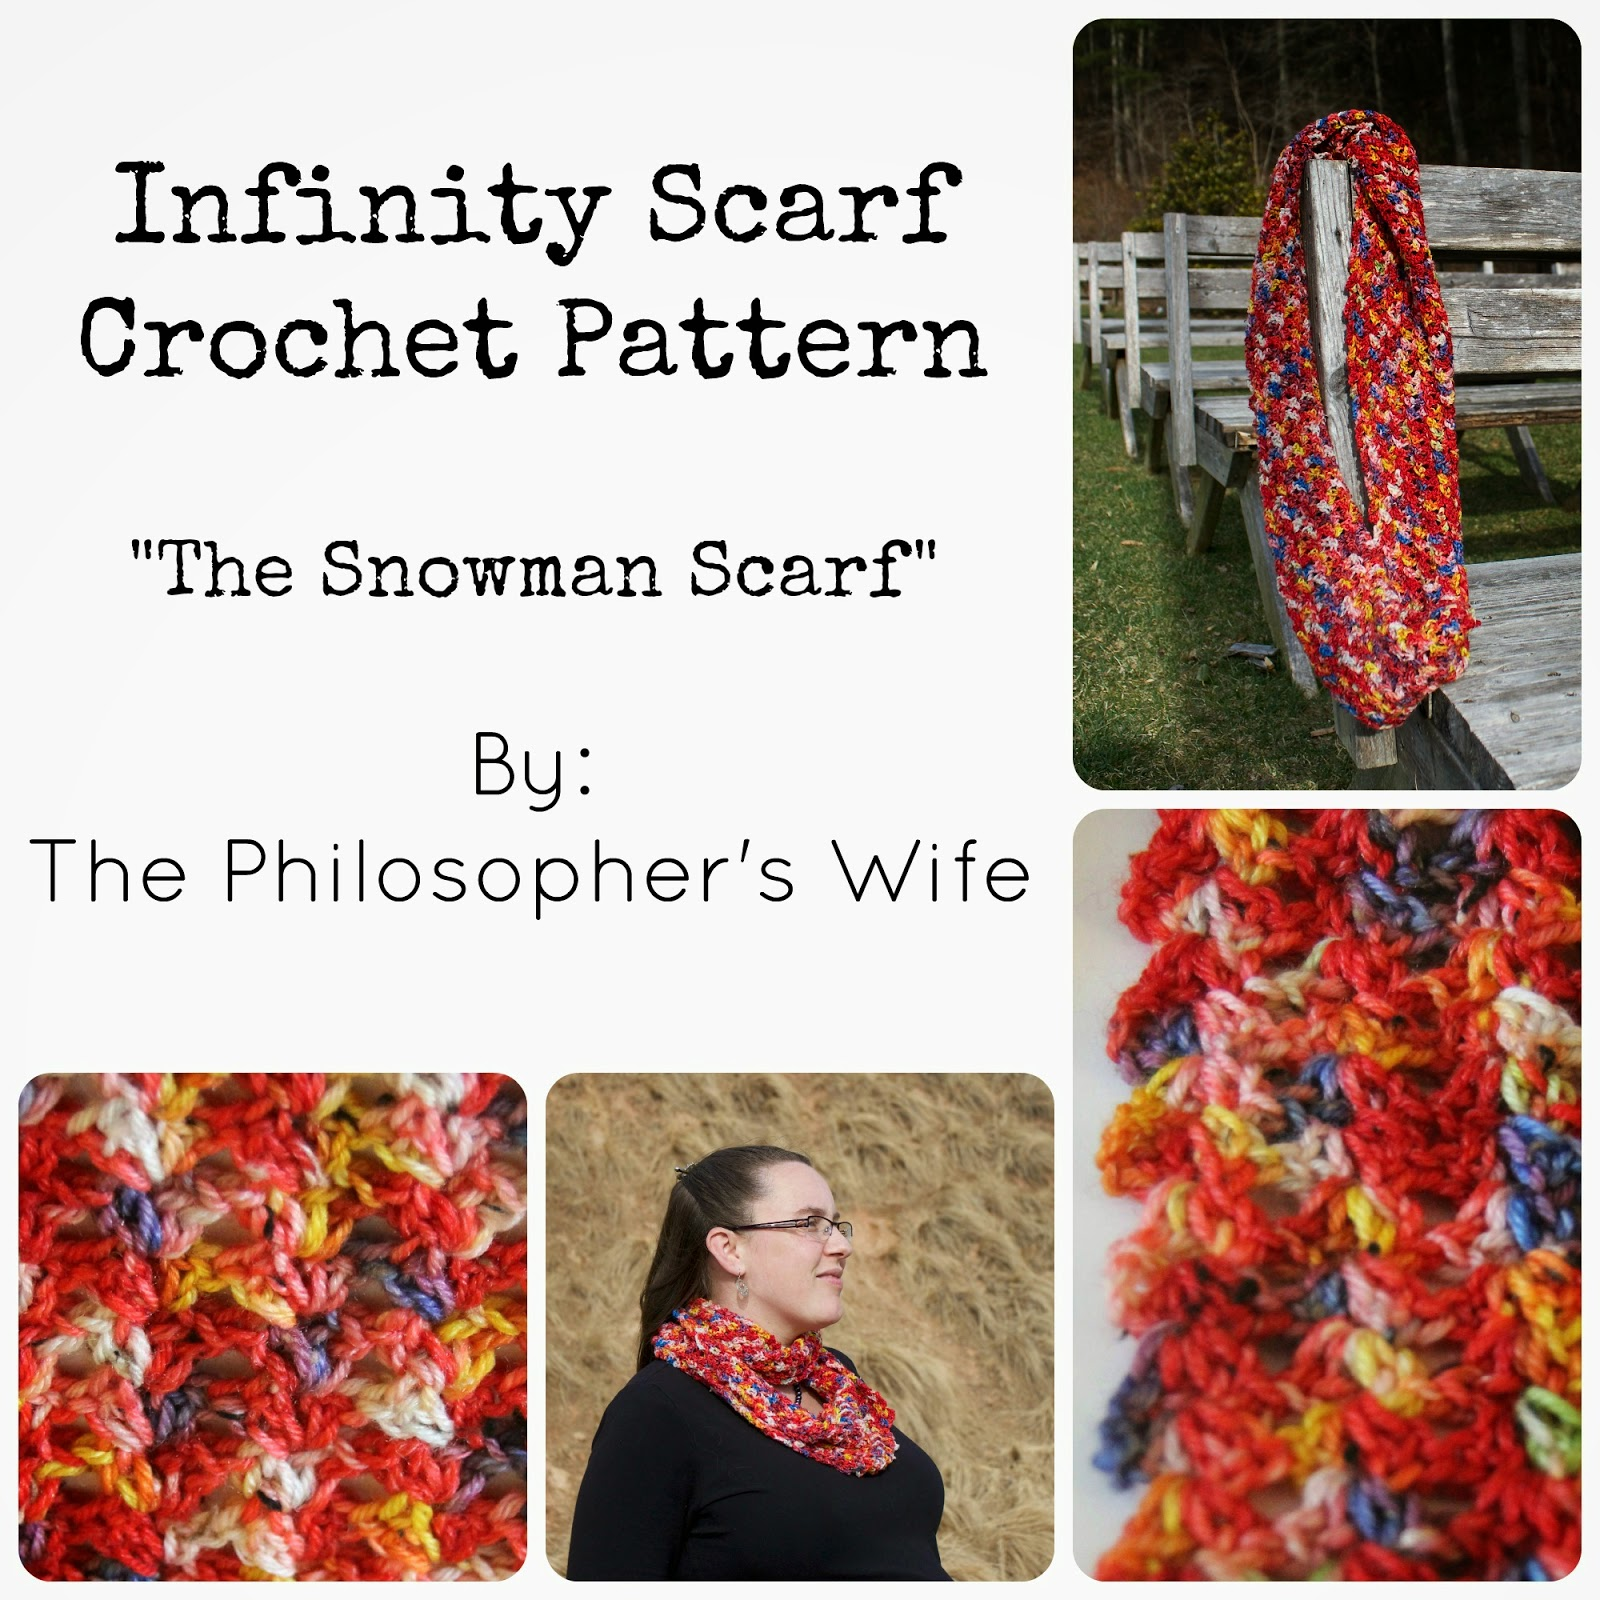 The Philosophers Wife: A Crochet Pattern: The